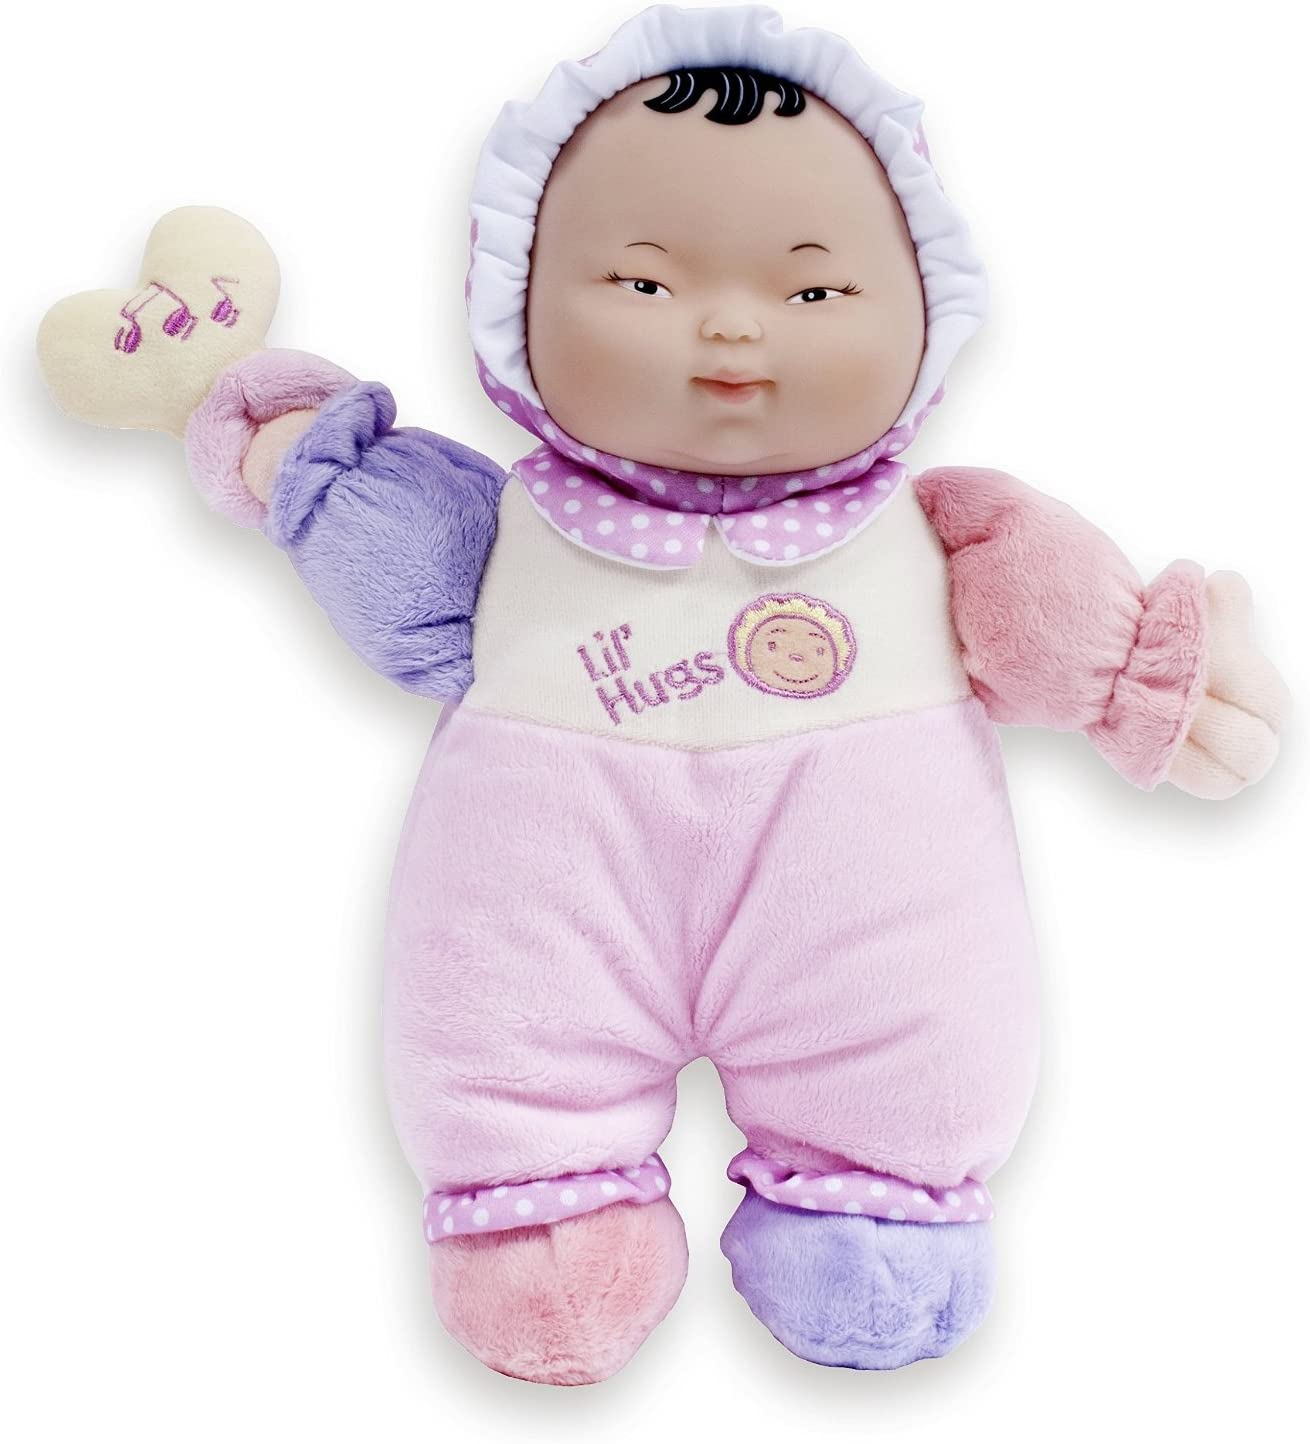 48001 Your First Baby Doll JC Toys Lil/' Hugs African American Pink Soft Body Ages 0+ JC Toys Group Inc Designed by Berenguer